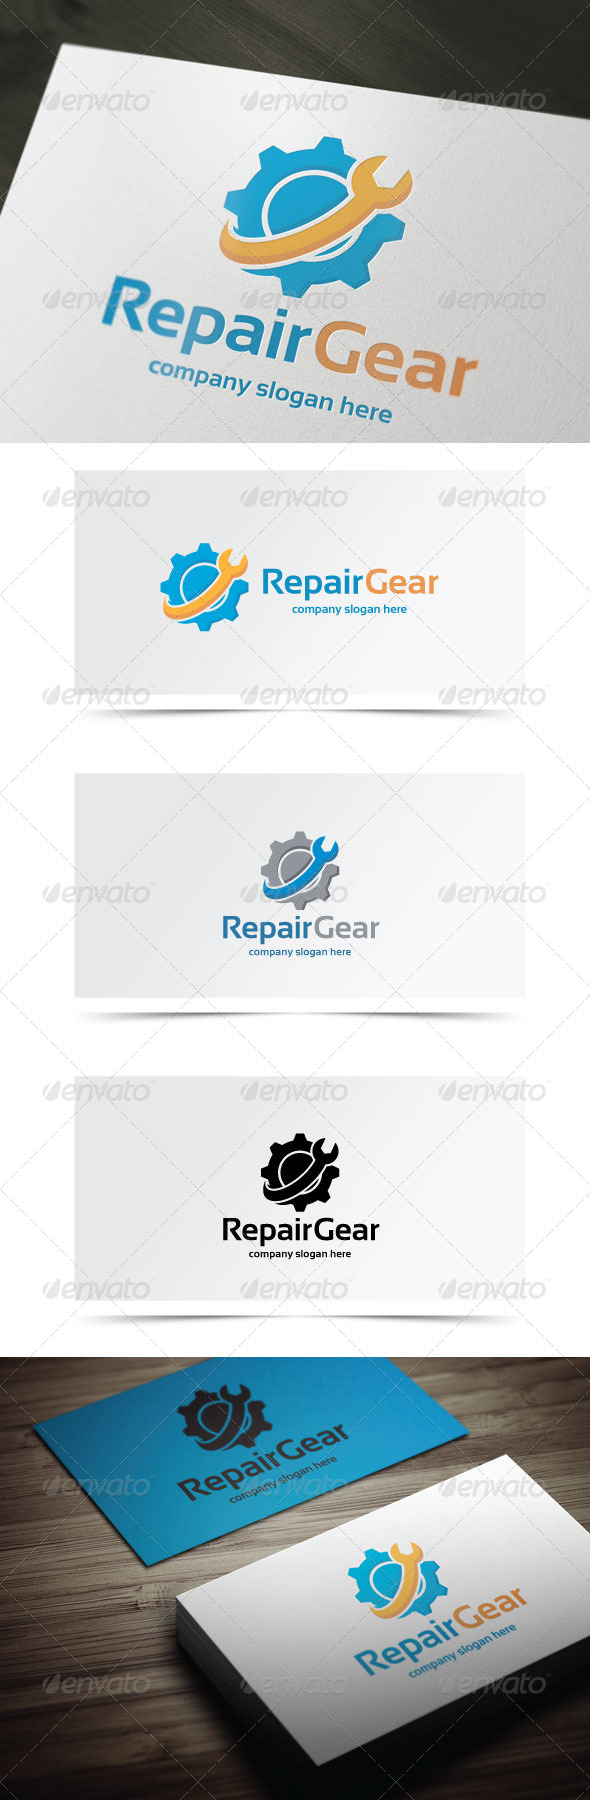 GraphicRiver Repair Gear 8102953